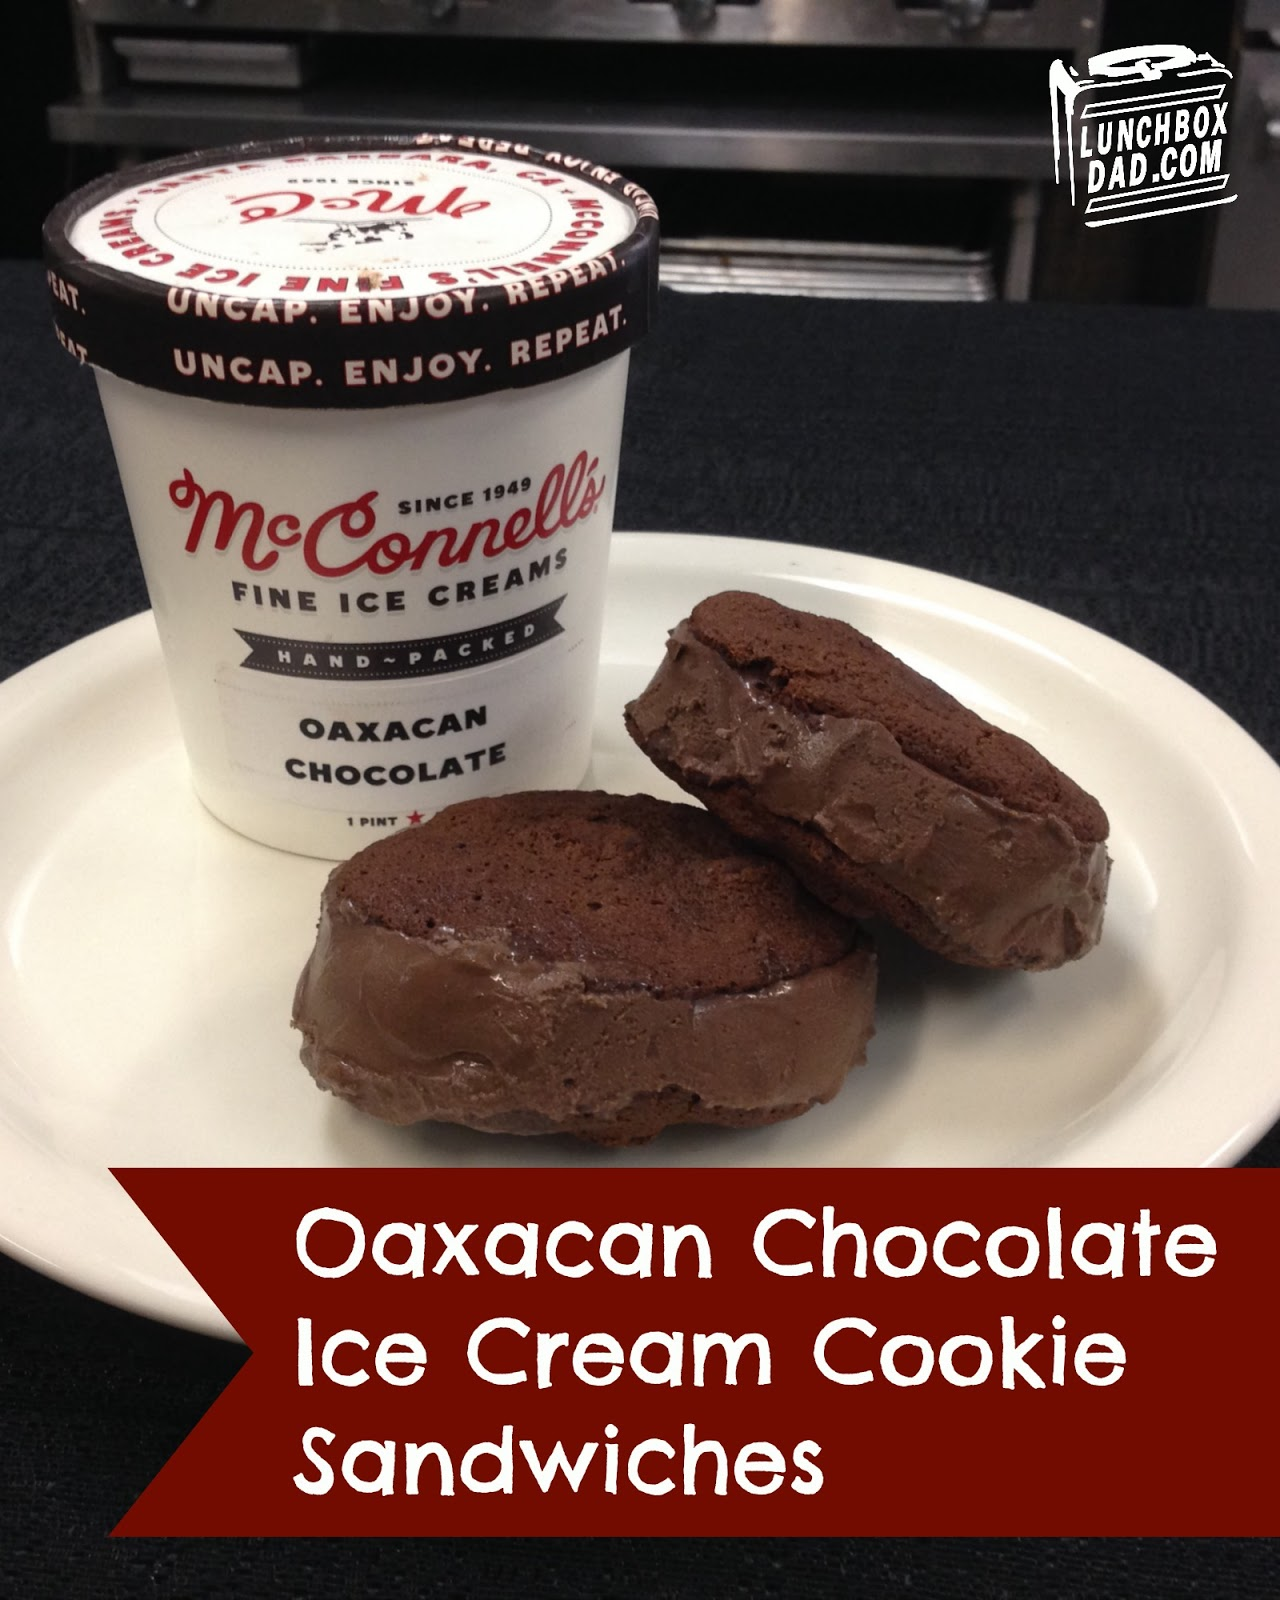 ... Review: McConnell's Fine Ice Cream & Ice Cream Cookie Sandwich Re...